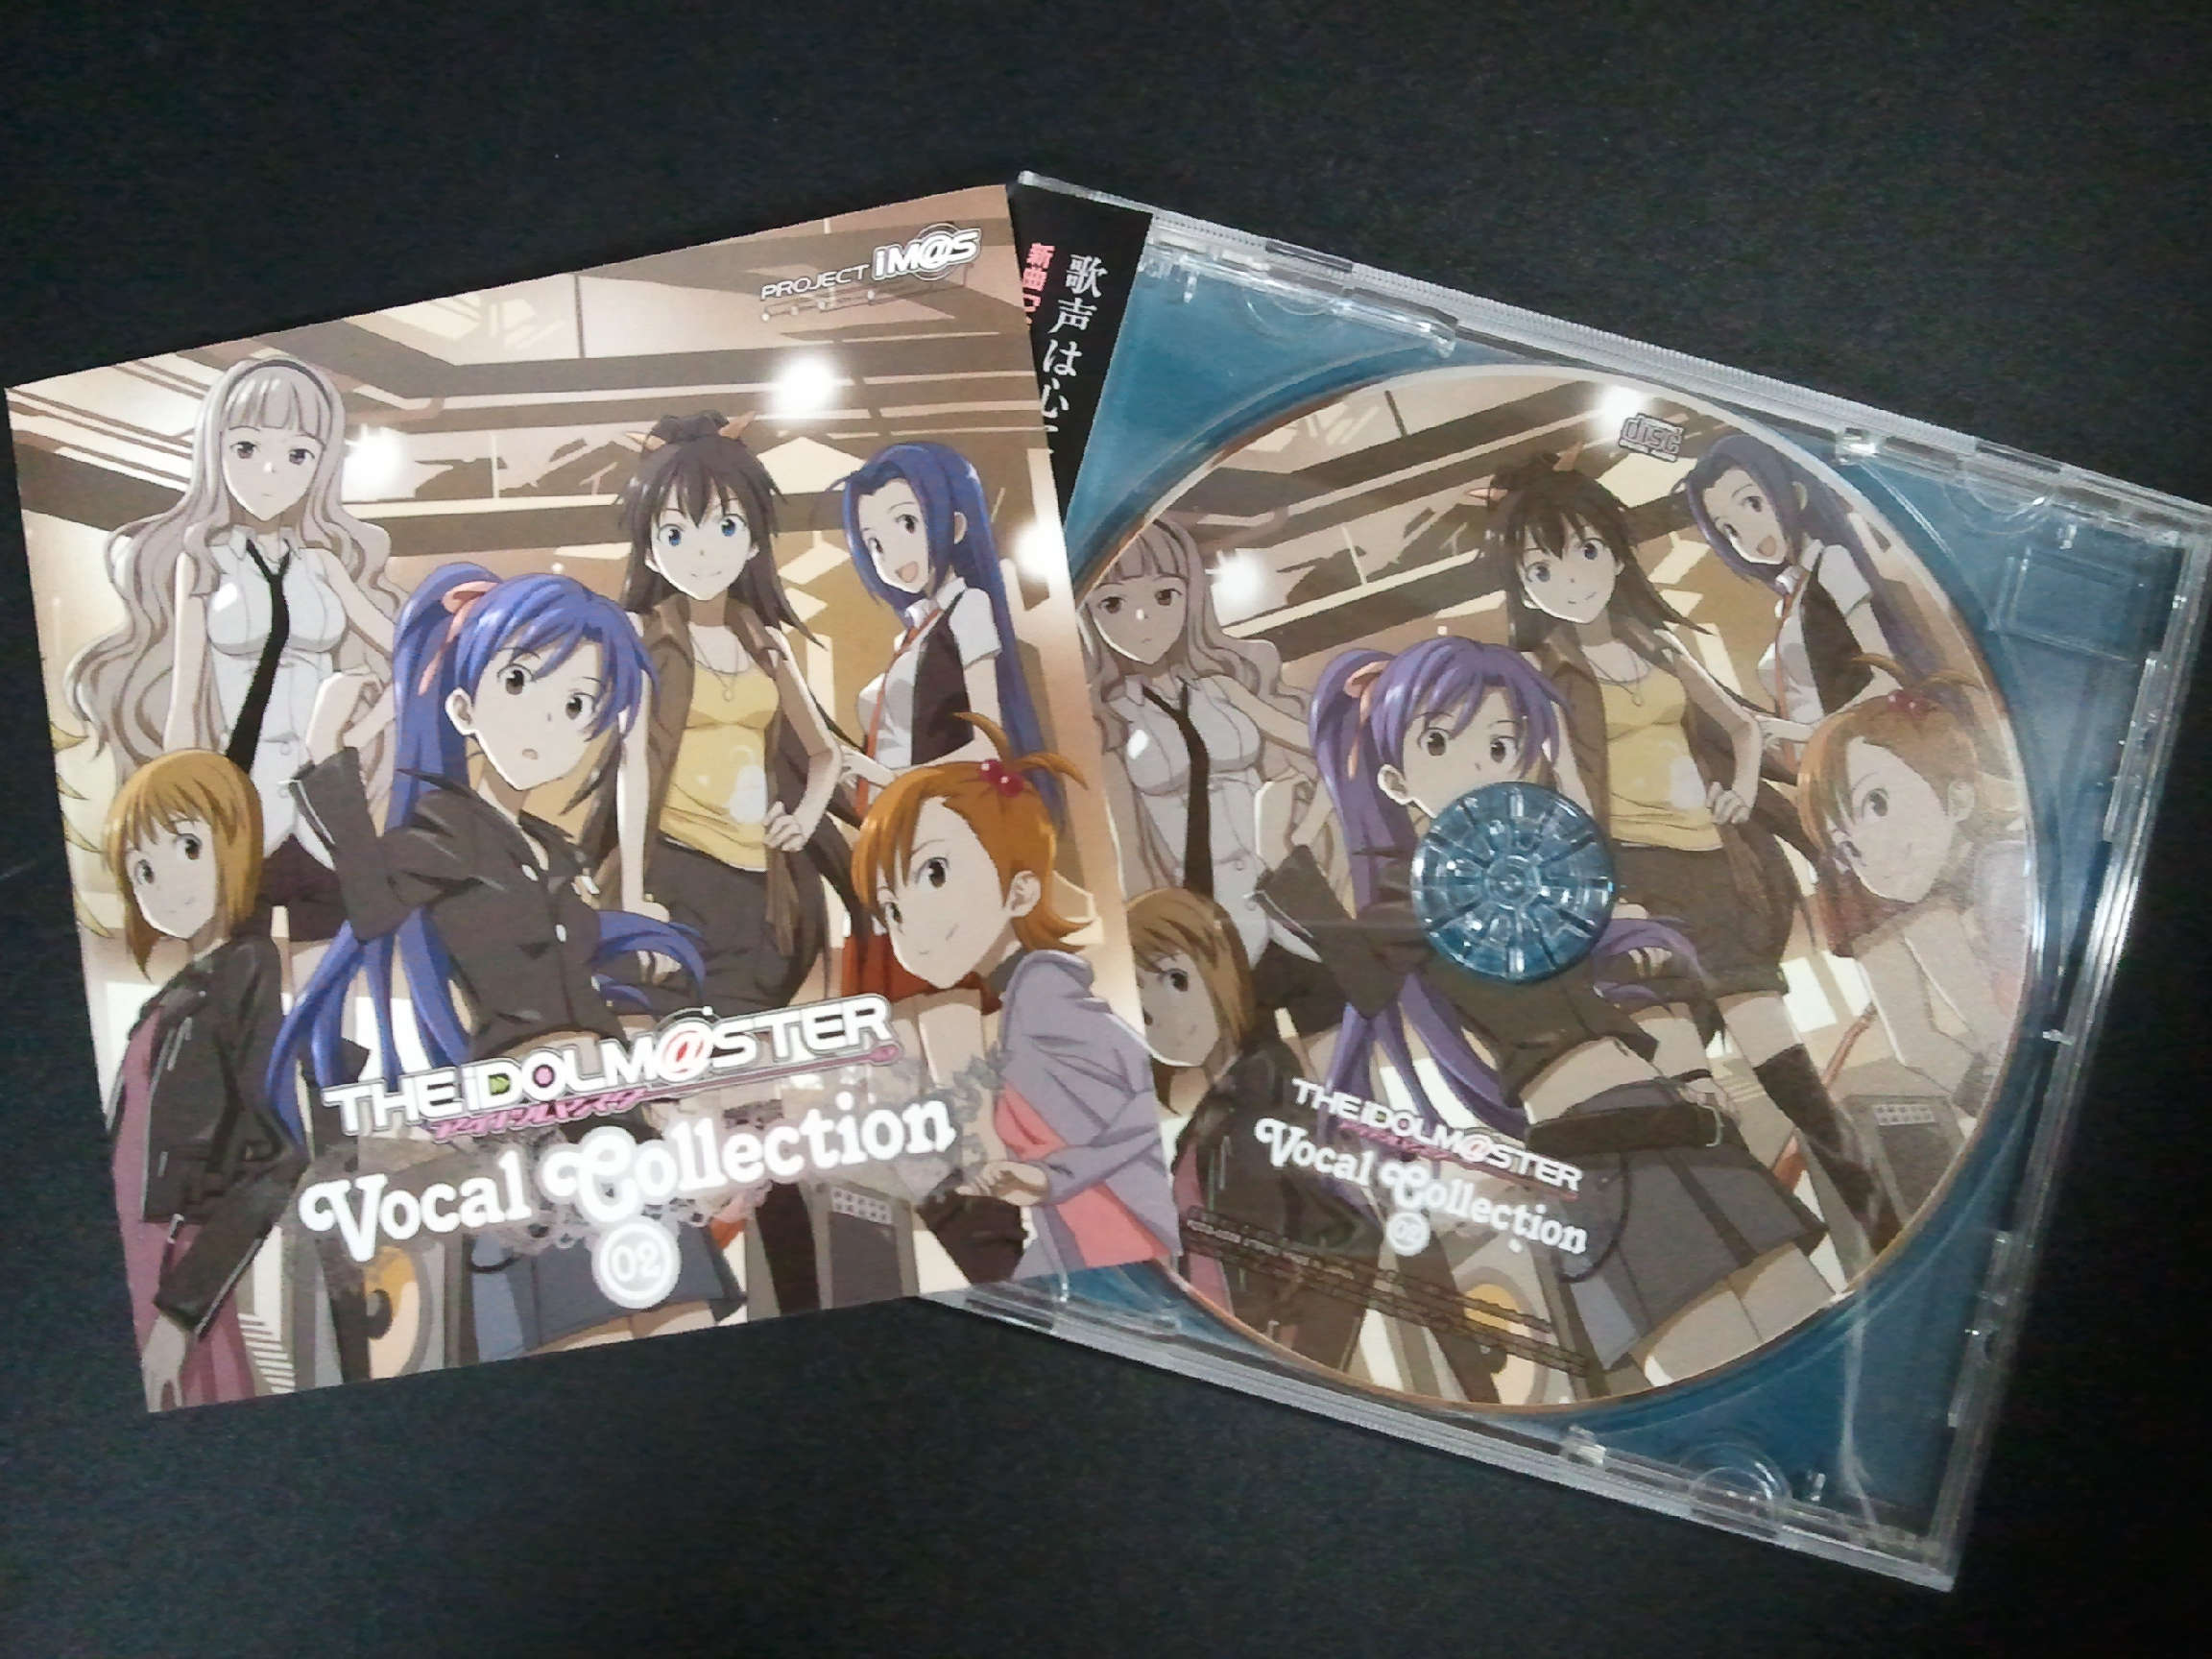 The Idolm@ster Vocal Collection 2